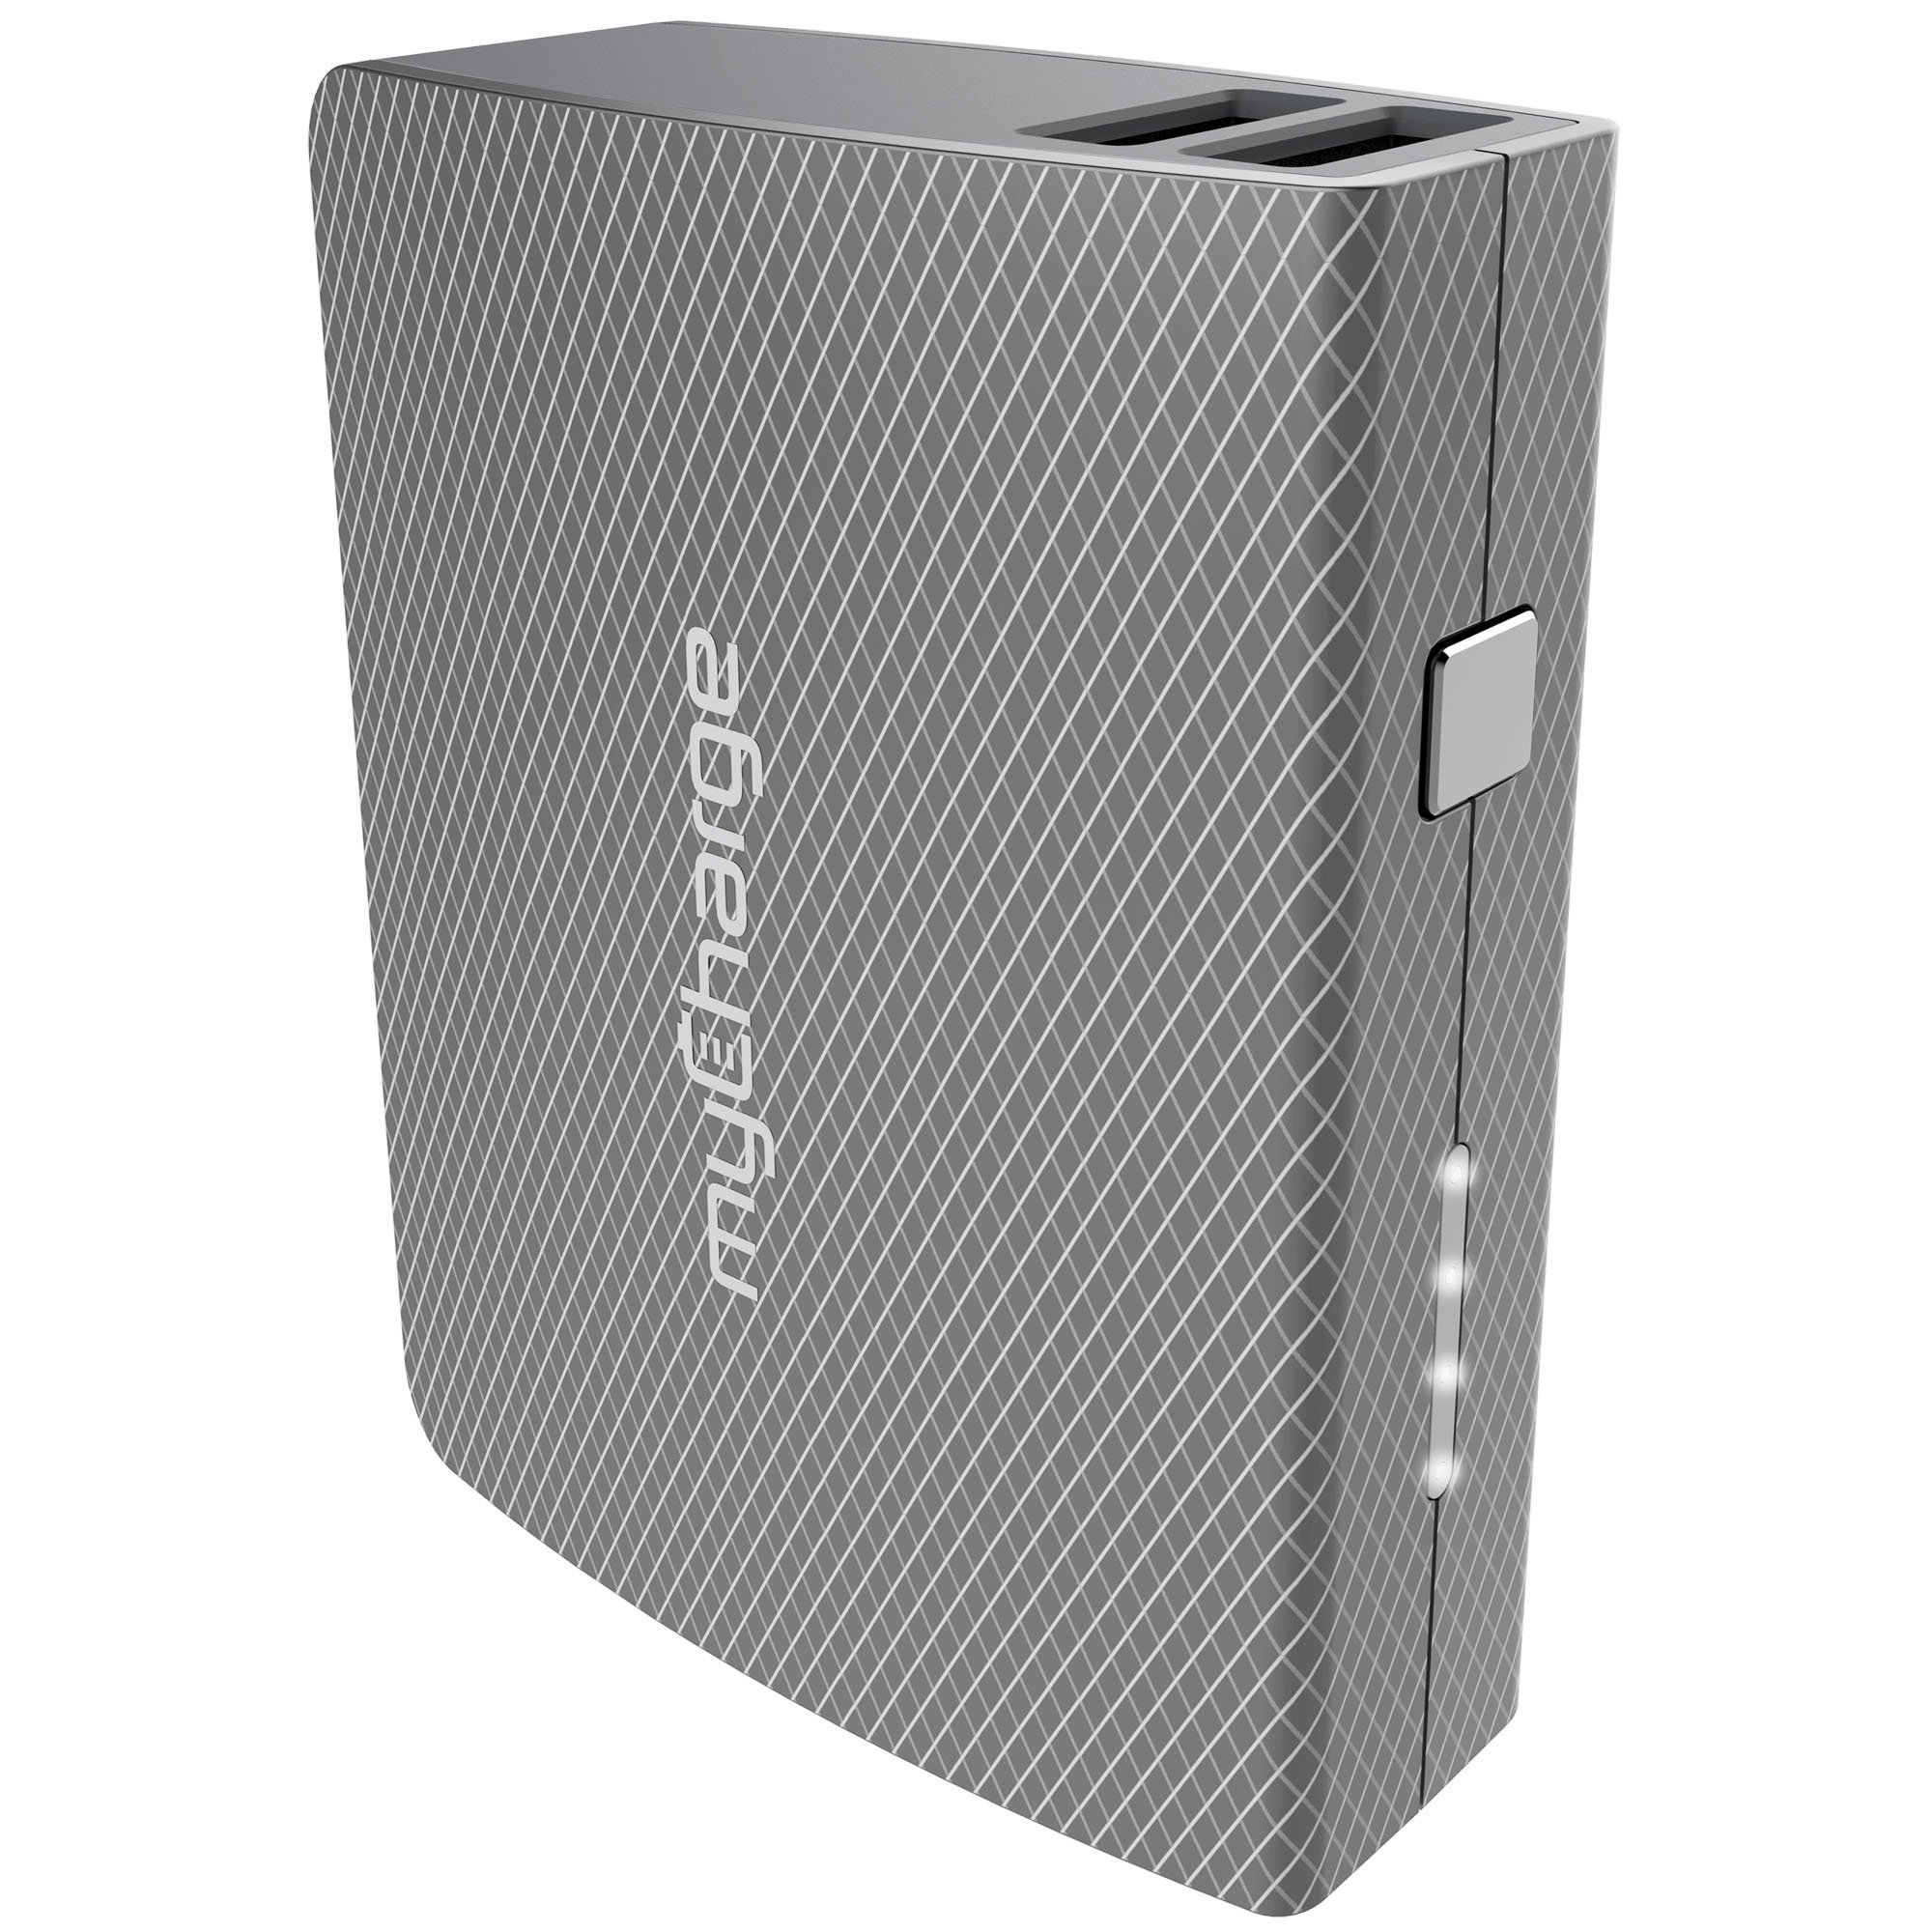 myCharge AmpPlus Portable Charger 4400mAh / 2.4A Dual USB Port External Battery Pack Power Bank for USB and Apple Android (iPhone XS, XS Max, XR, X, 8, 8 Plus, 7, 6S, iPad, Samsung Galaxy, LG, Nokia)